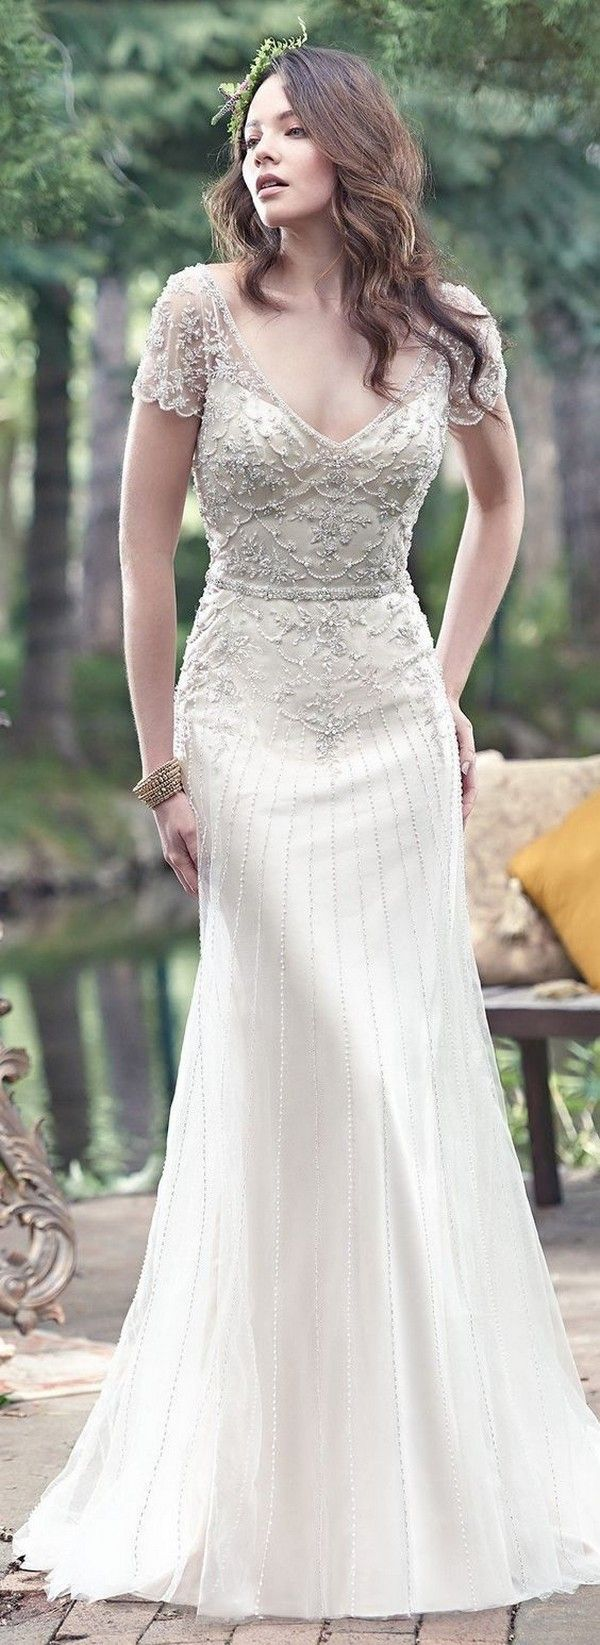 Best dresses to wear to a wedding reception  Top  Vintage Wedding Dresses with Cap Sleeves  Dream on